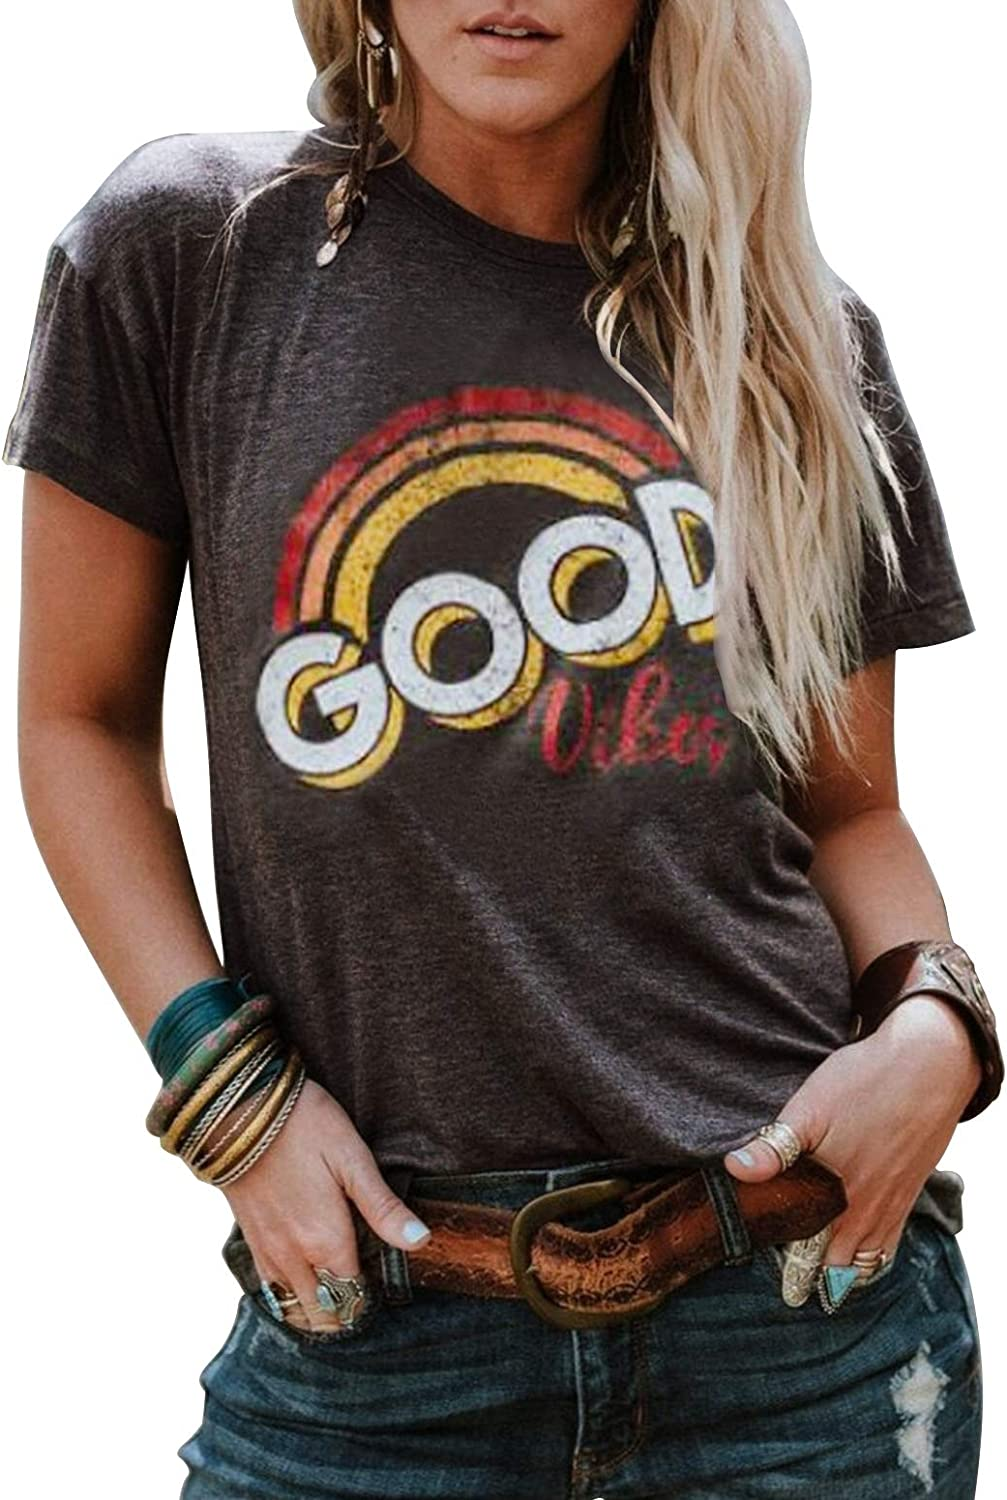 Good Vibes Rainbow T-Shirt Costume Women's Vintage Casual Graphic Blouse Top Tee